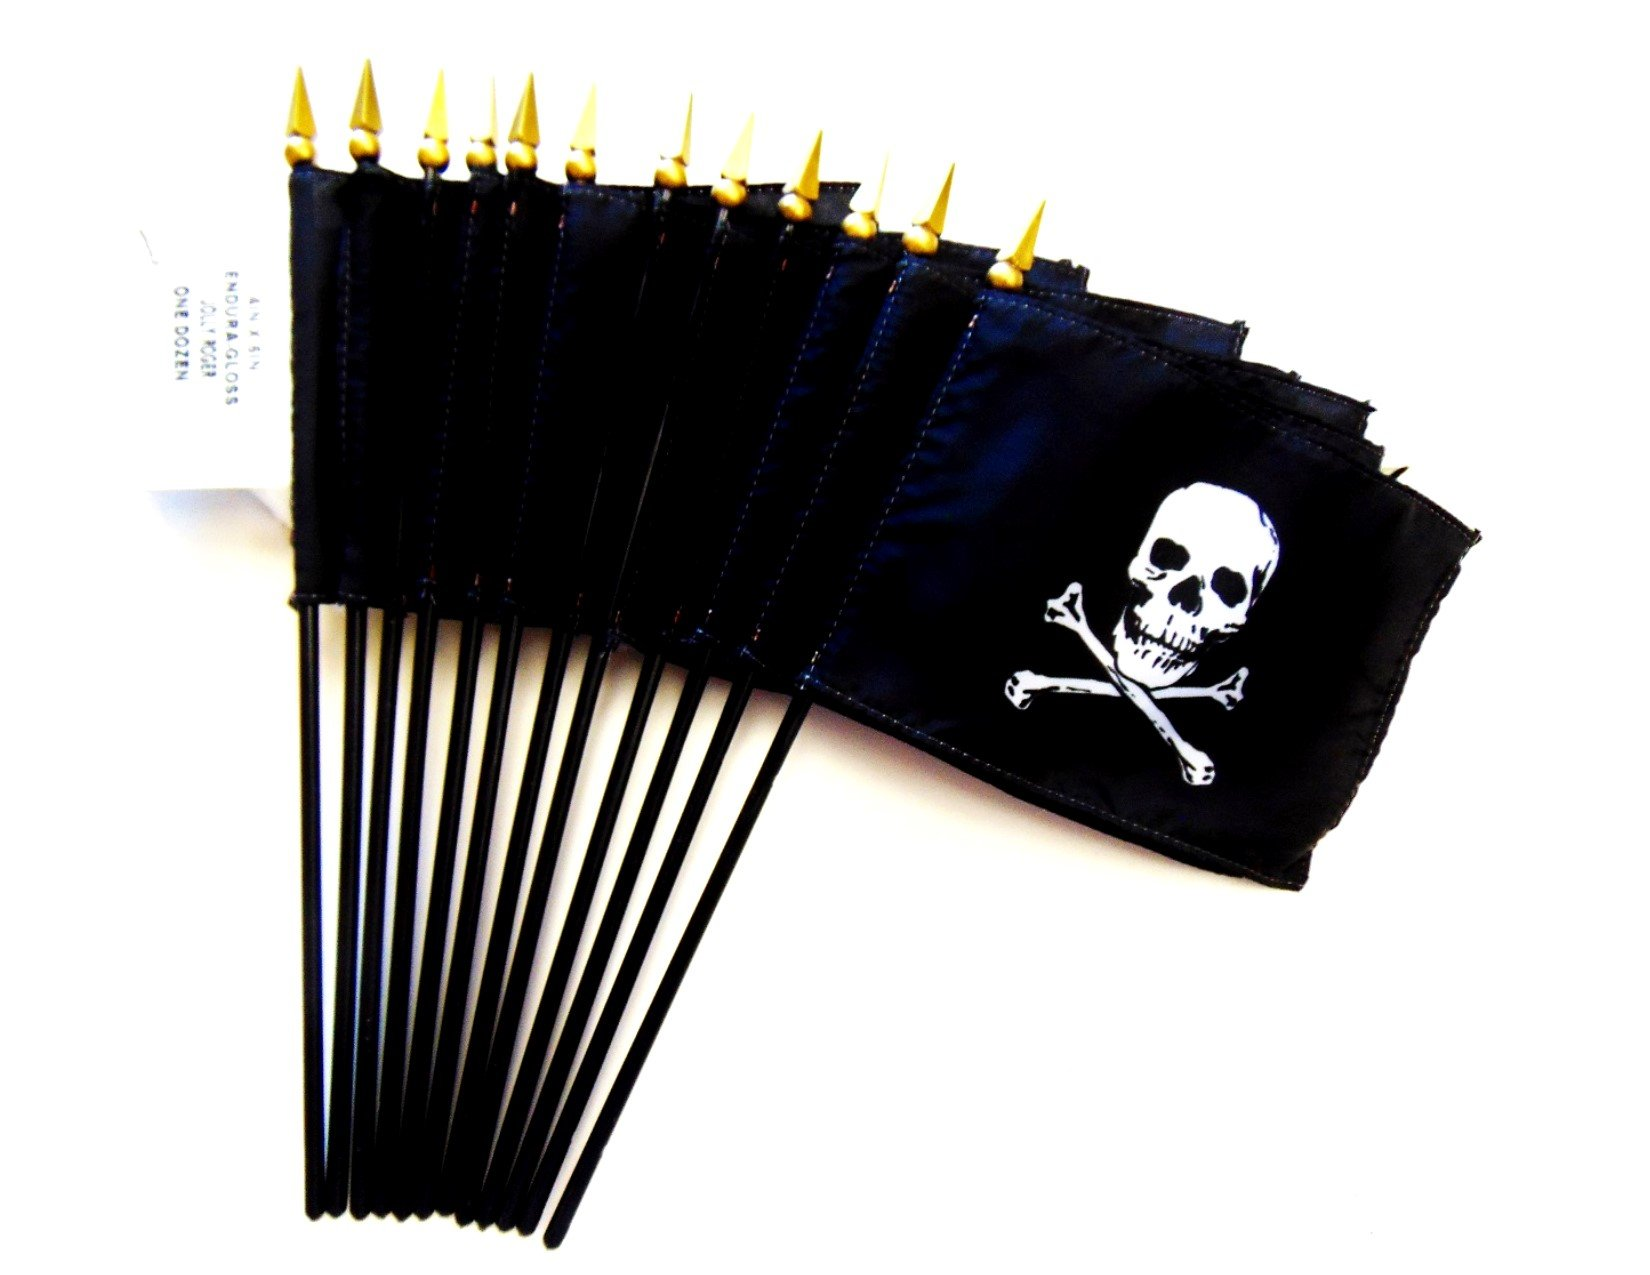 MADE IN USA!! Box of 12 Jolly Roger 4''x6'' Miniature Desk & Table Flags; 12 American Made Small Mini Jolly Roger Pirate Flags in a Custom Made Cardboard Box Specifically Made for These Flags